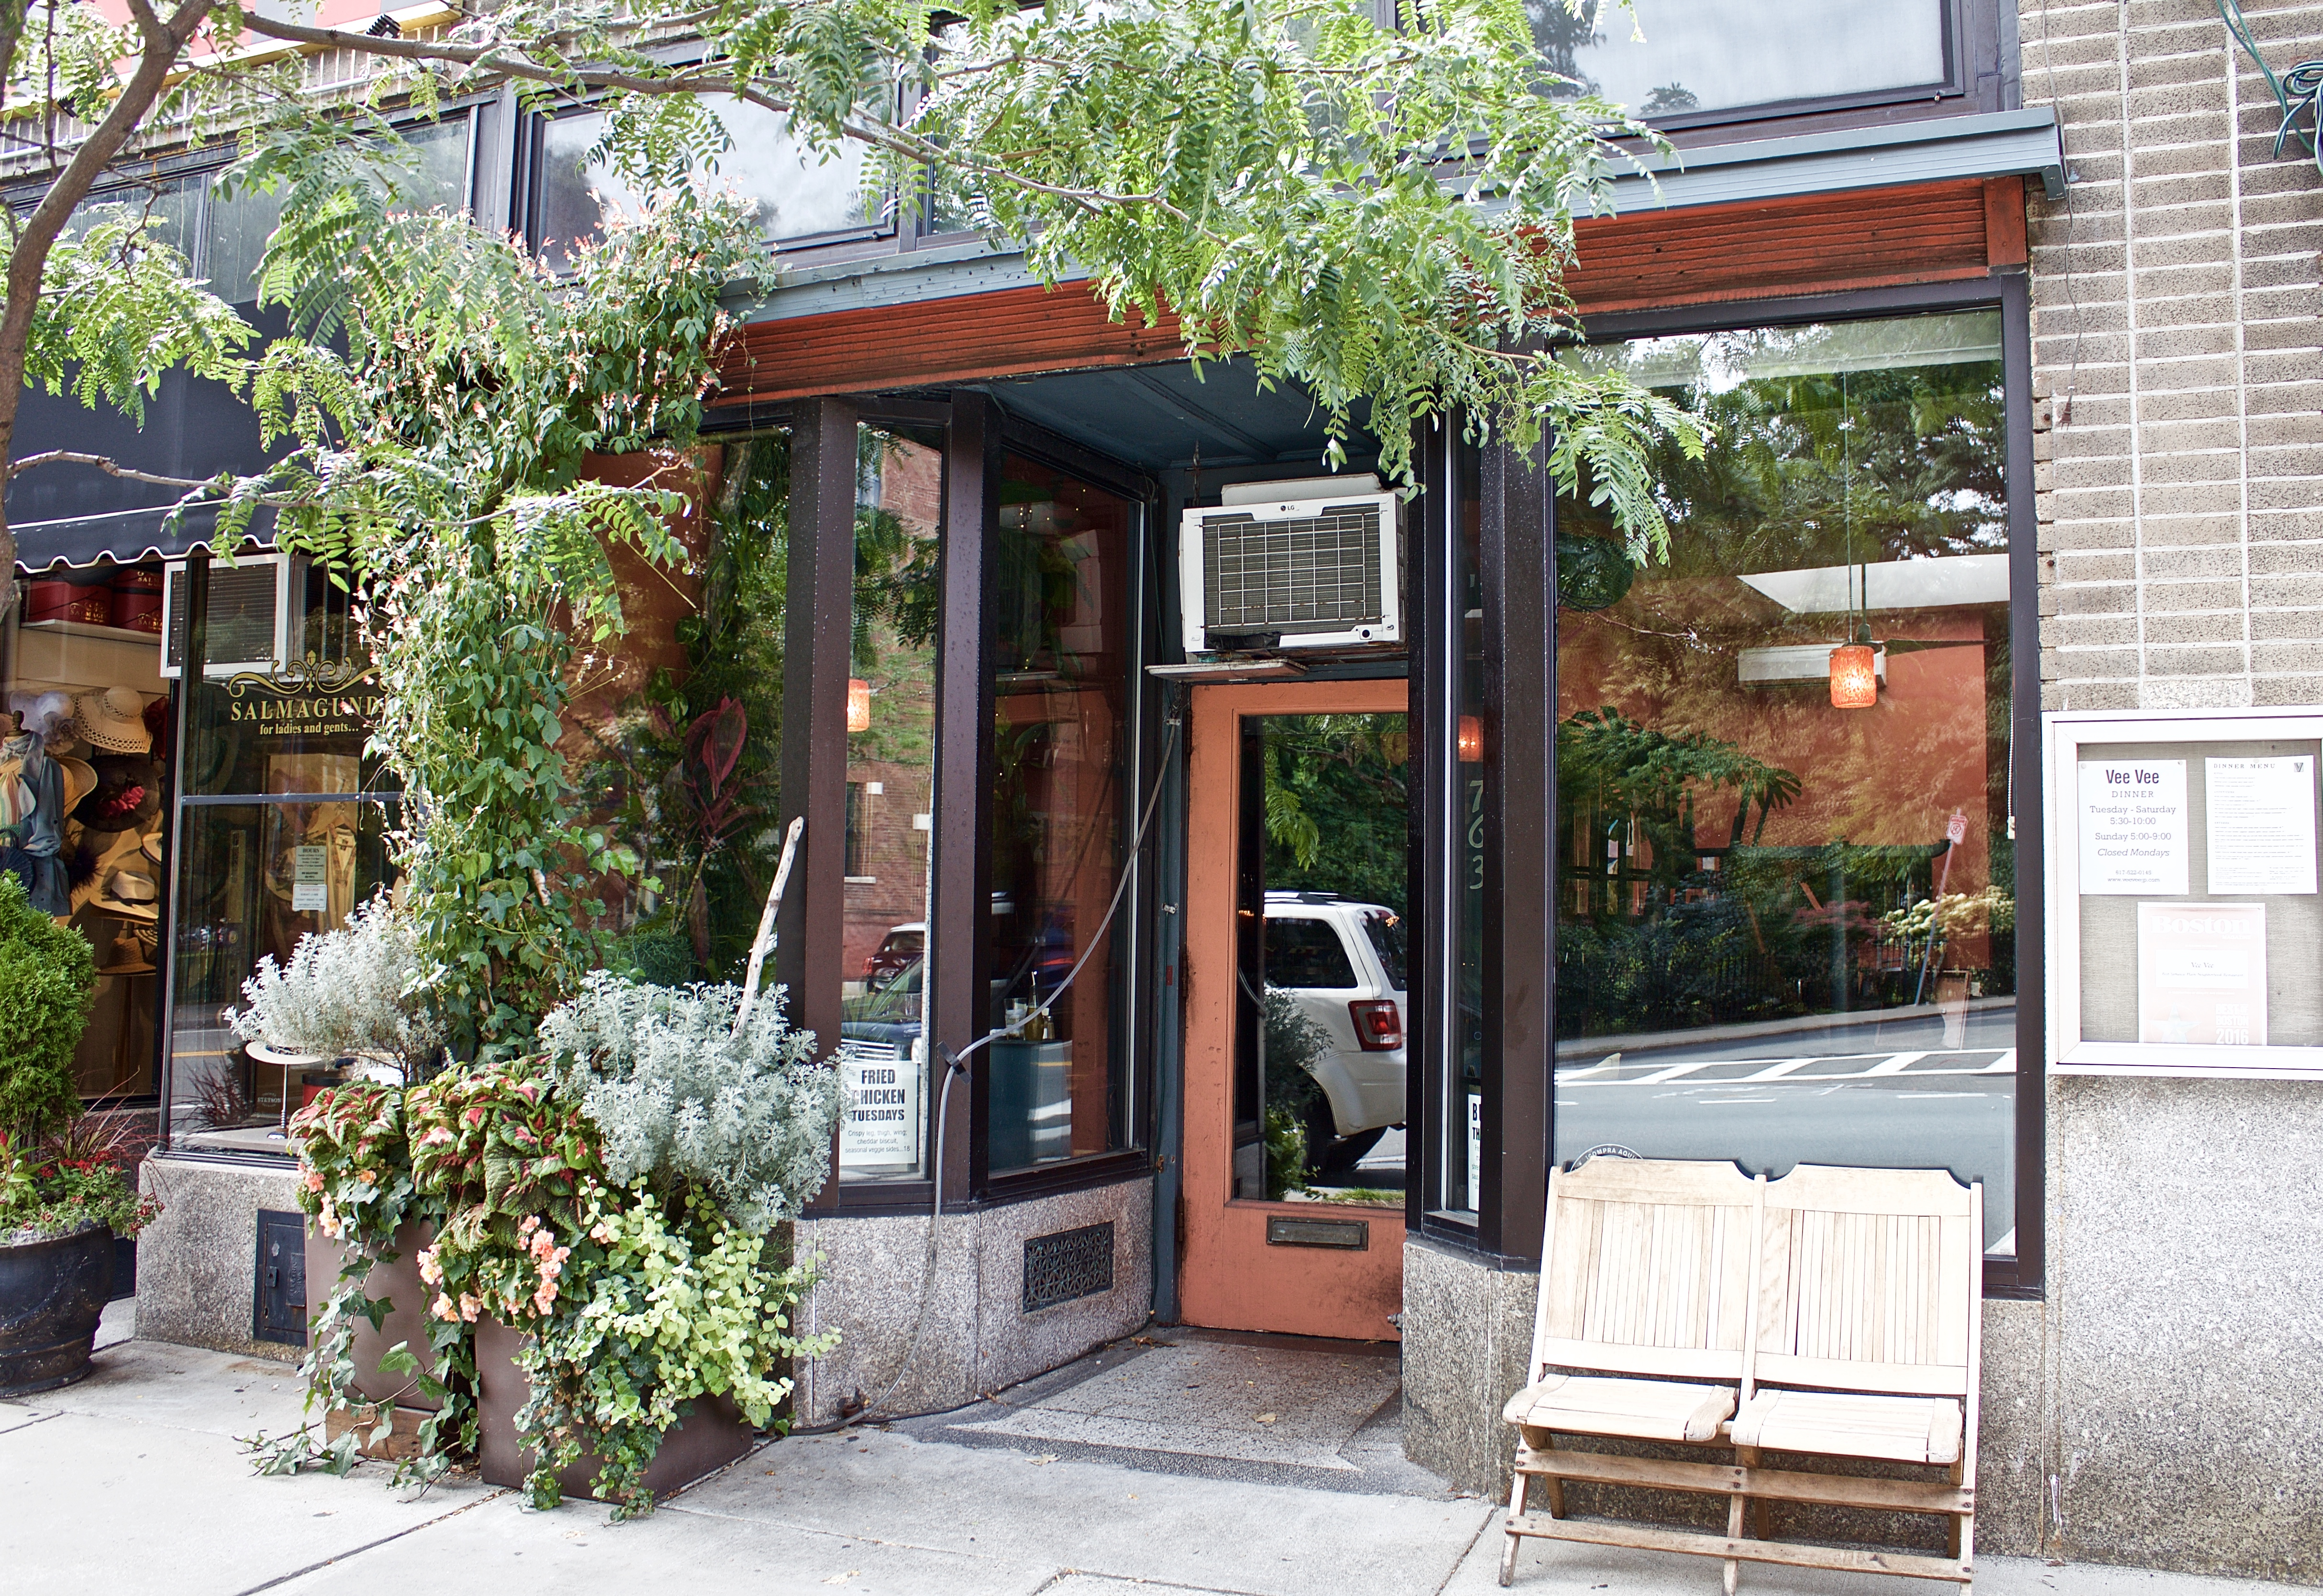 Where To Eat And Drink In Jamaica Plain Boston The Infatuation